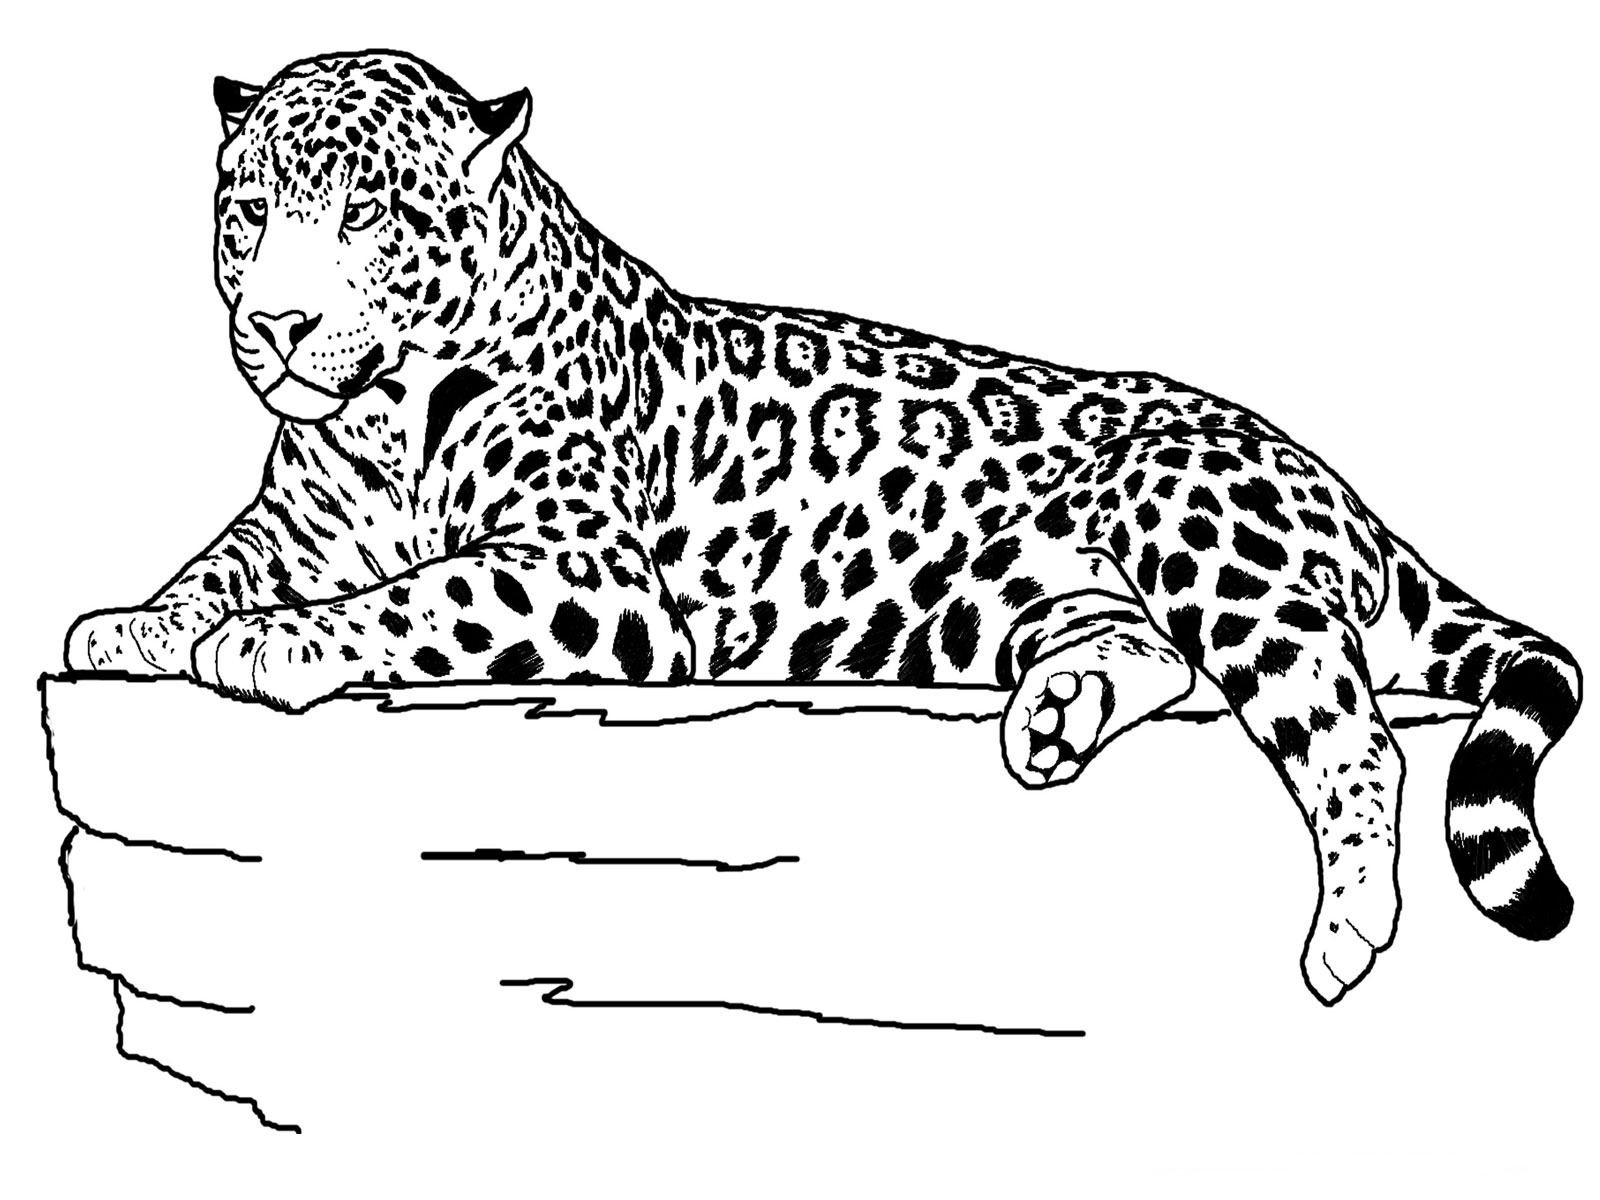 Zoo Animal Coloring Pages also available are farm animals